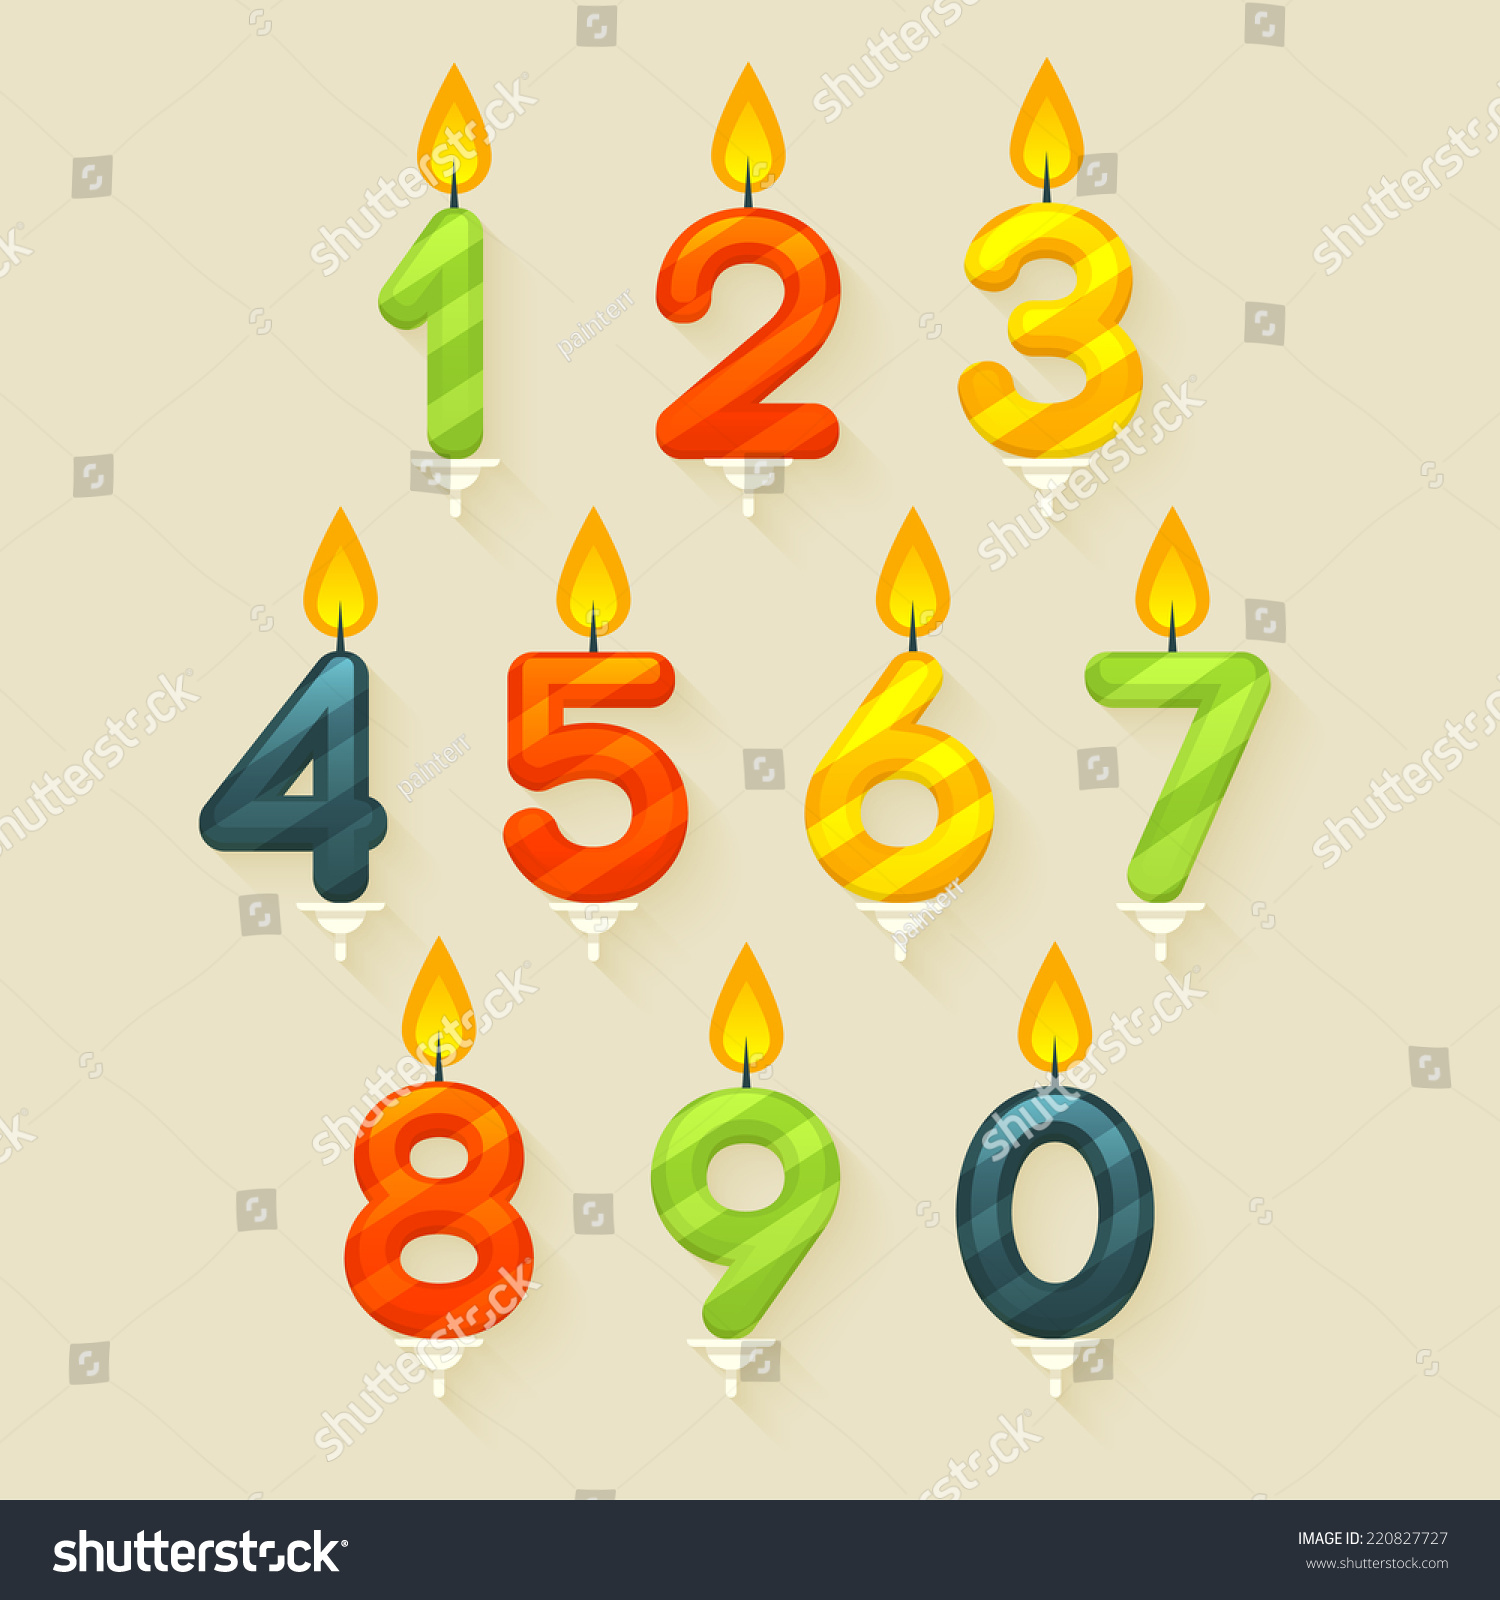 Set Of Colored Glossy Birthday Cake Candles Isolated On Bright Background With Fire Flame